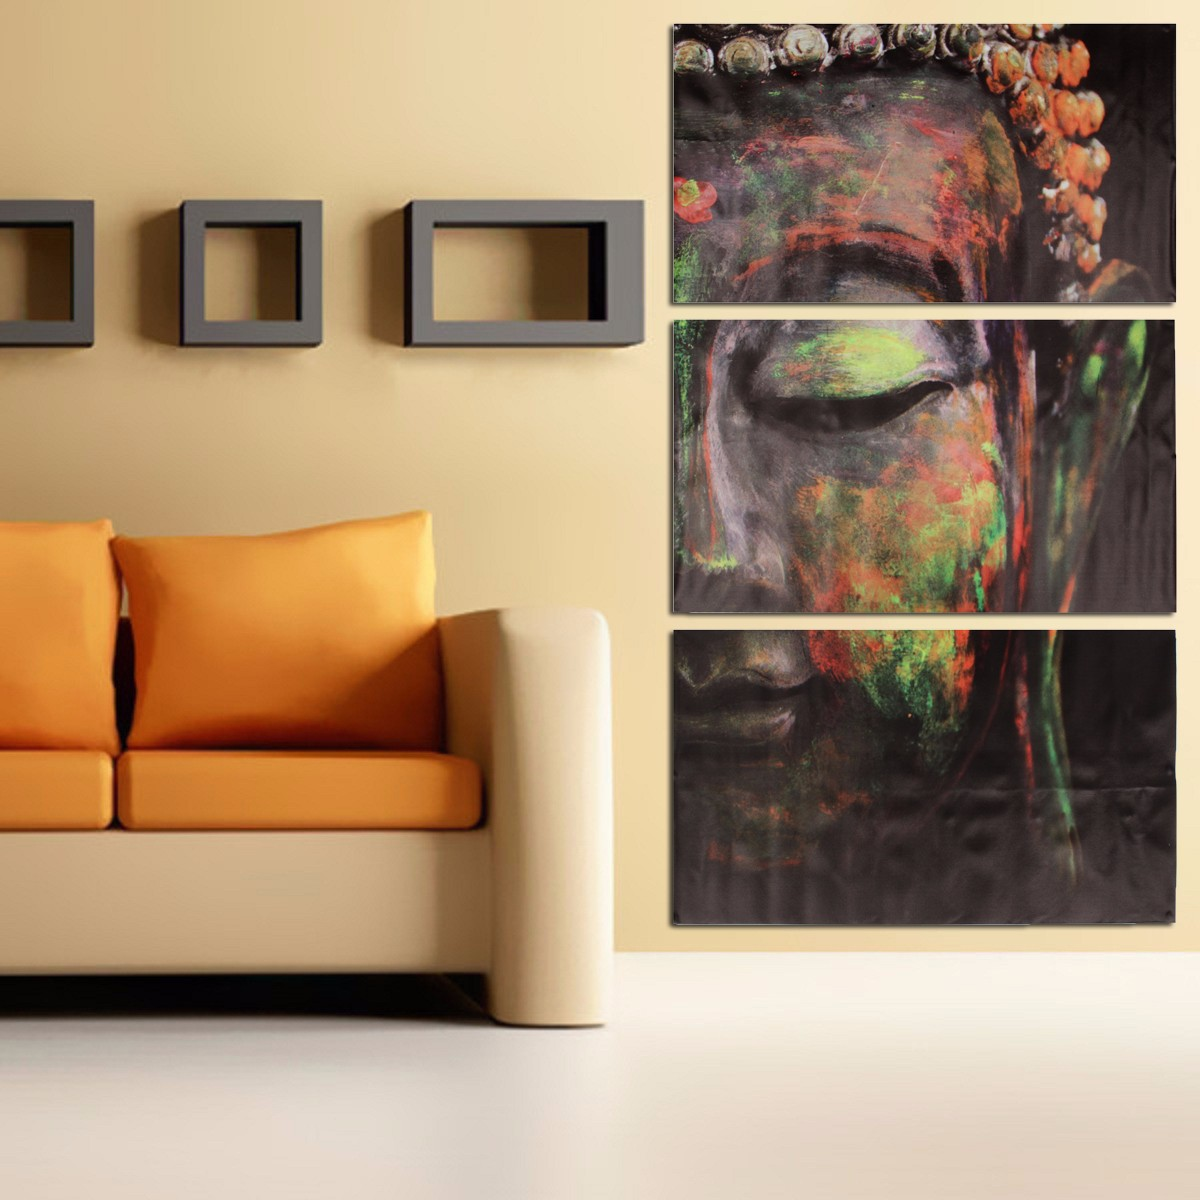 3pcs set buddha oil painting wall art picture canvas prints home decor posters lazada malaysia. Black Bedroom Furniture Sets. Home Design Ideas